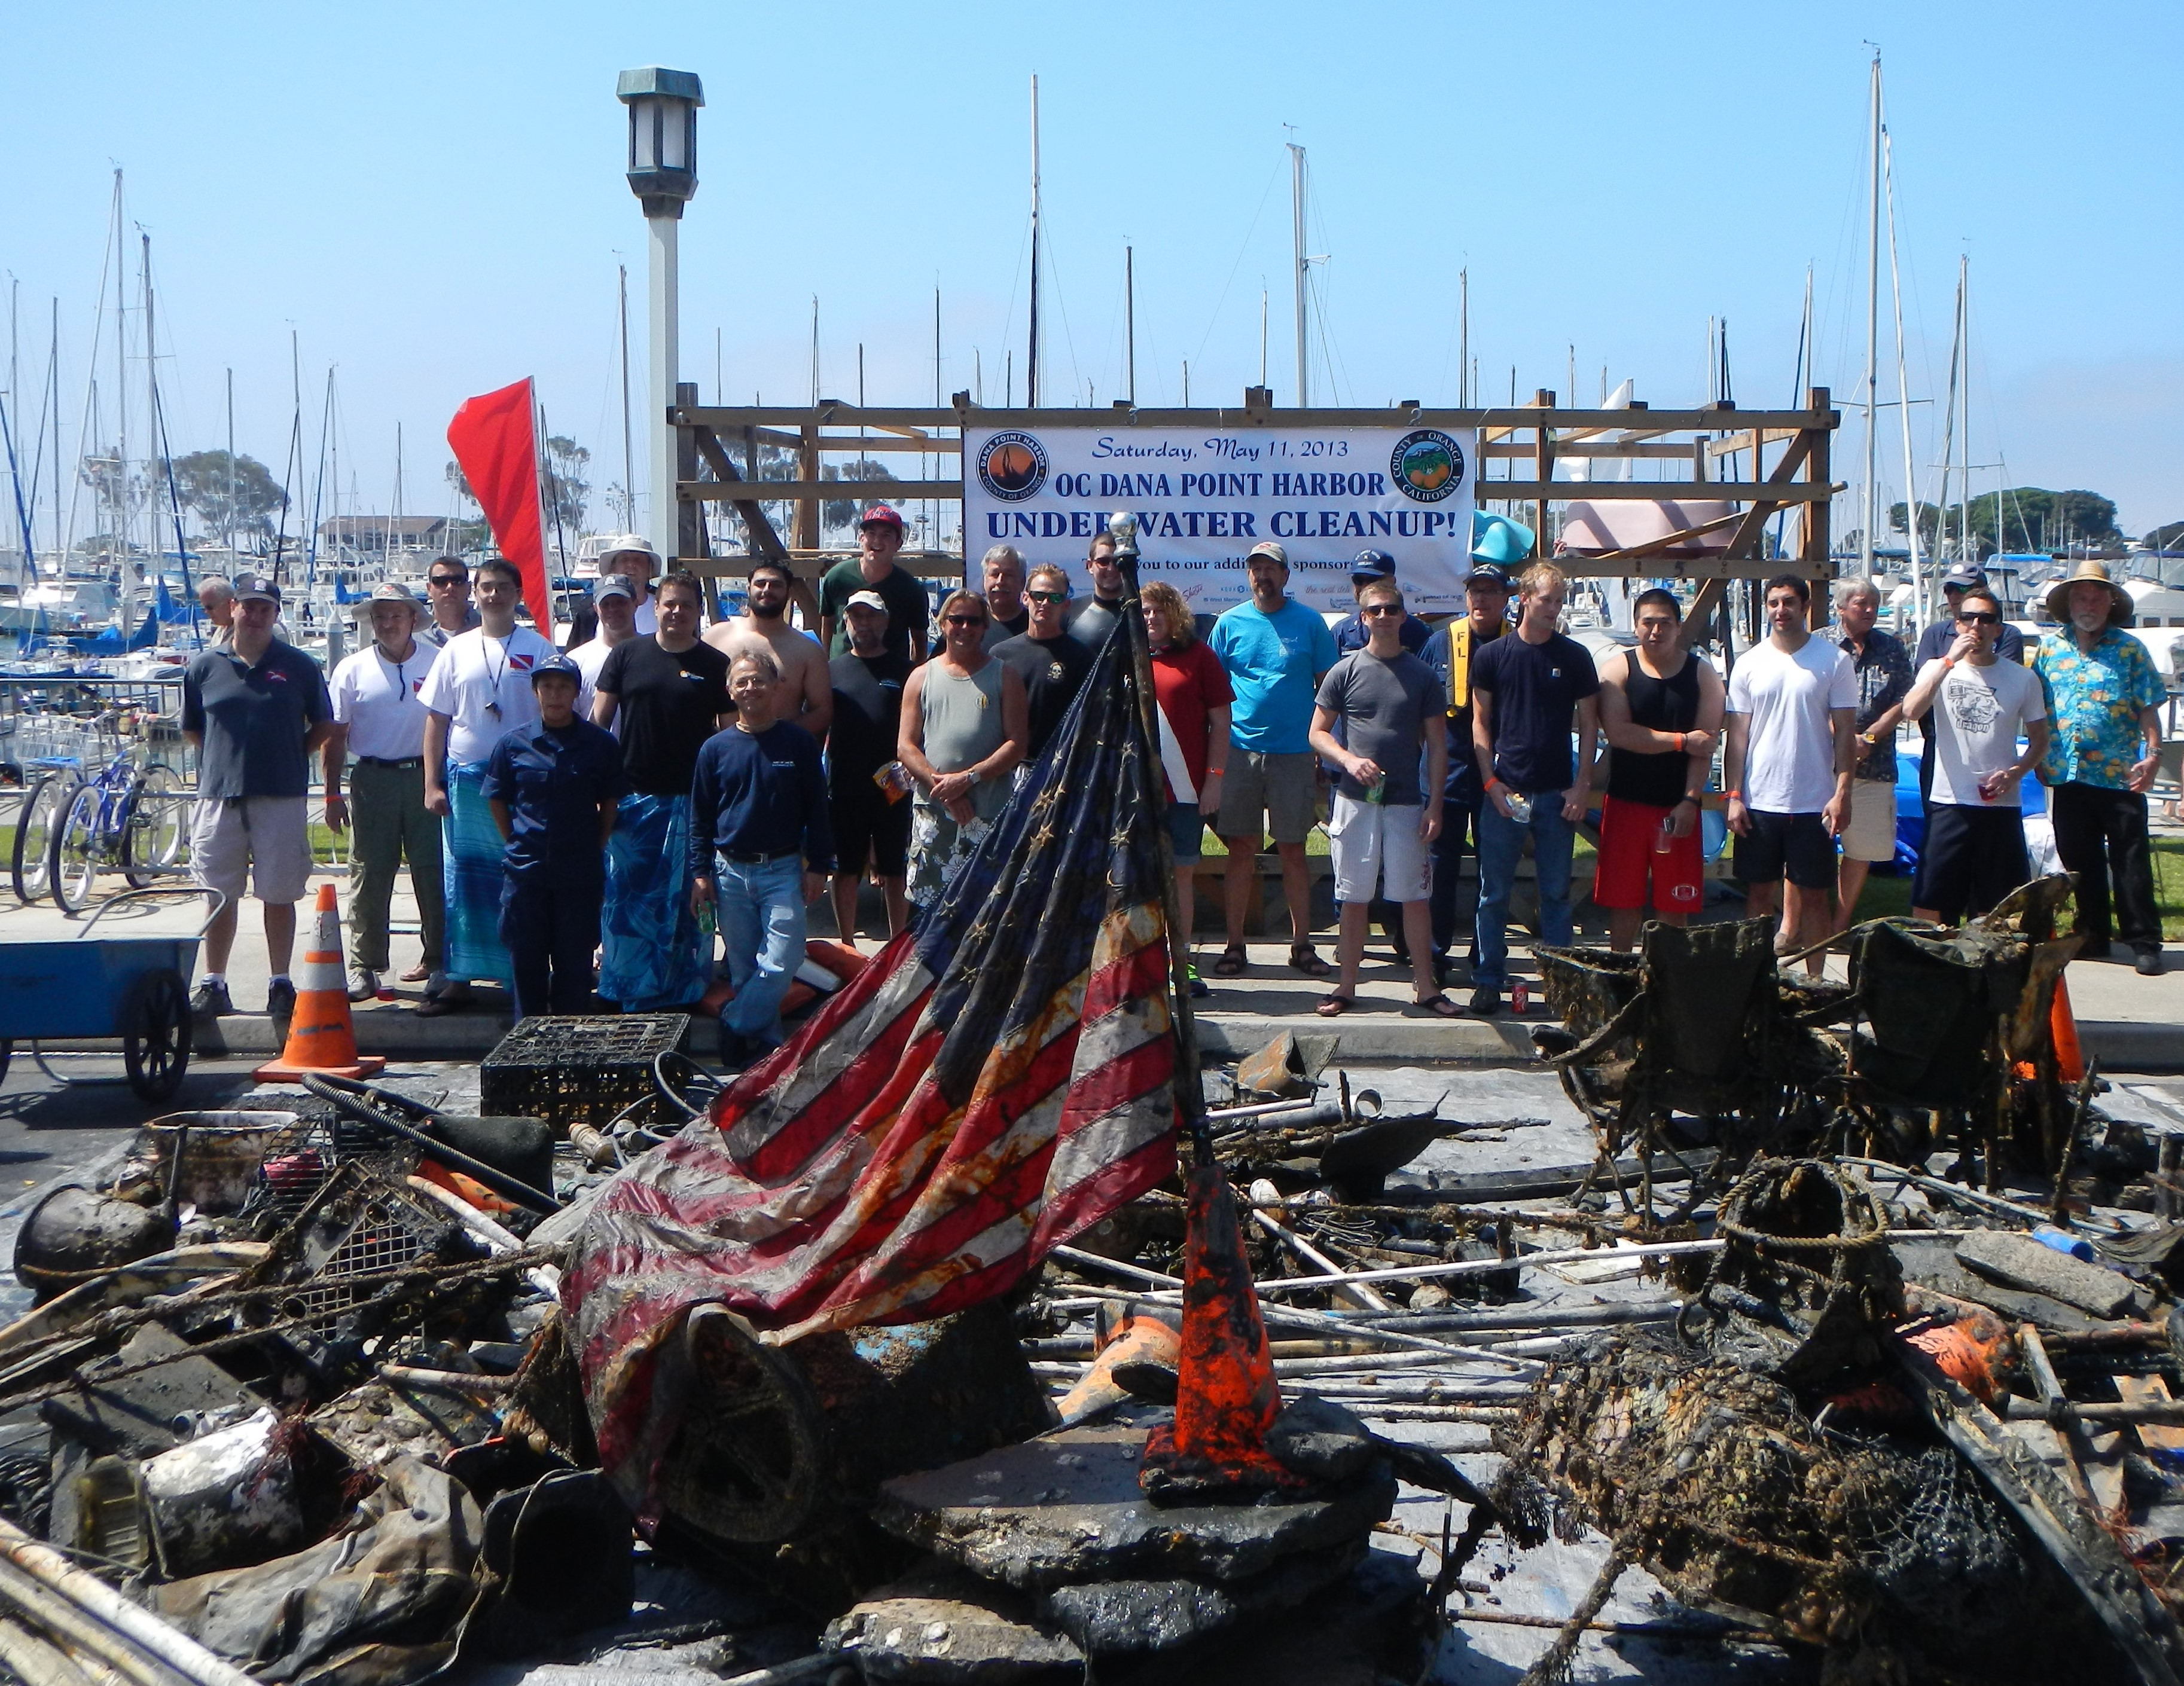 Volunteer divers at a past Dana Point Harbor Underwater Cleanup stand with piles of debris collected from the harbor floor. Photo: Courtesy